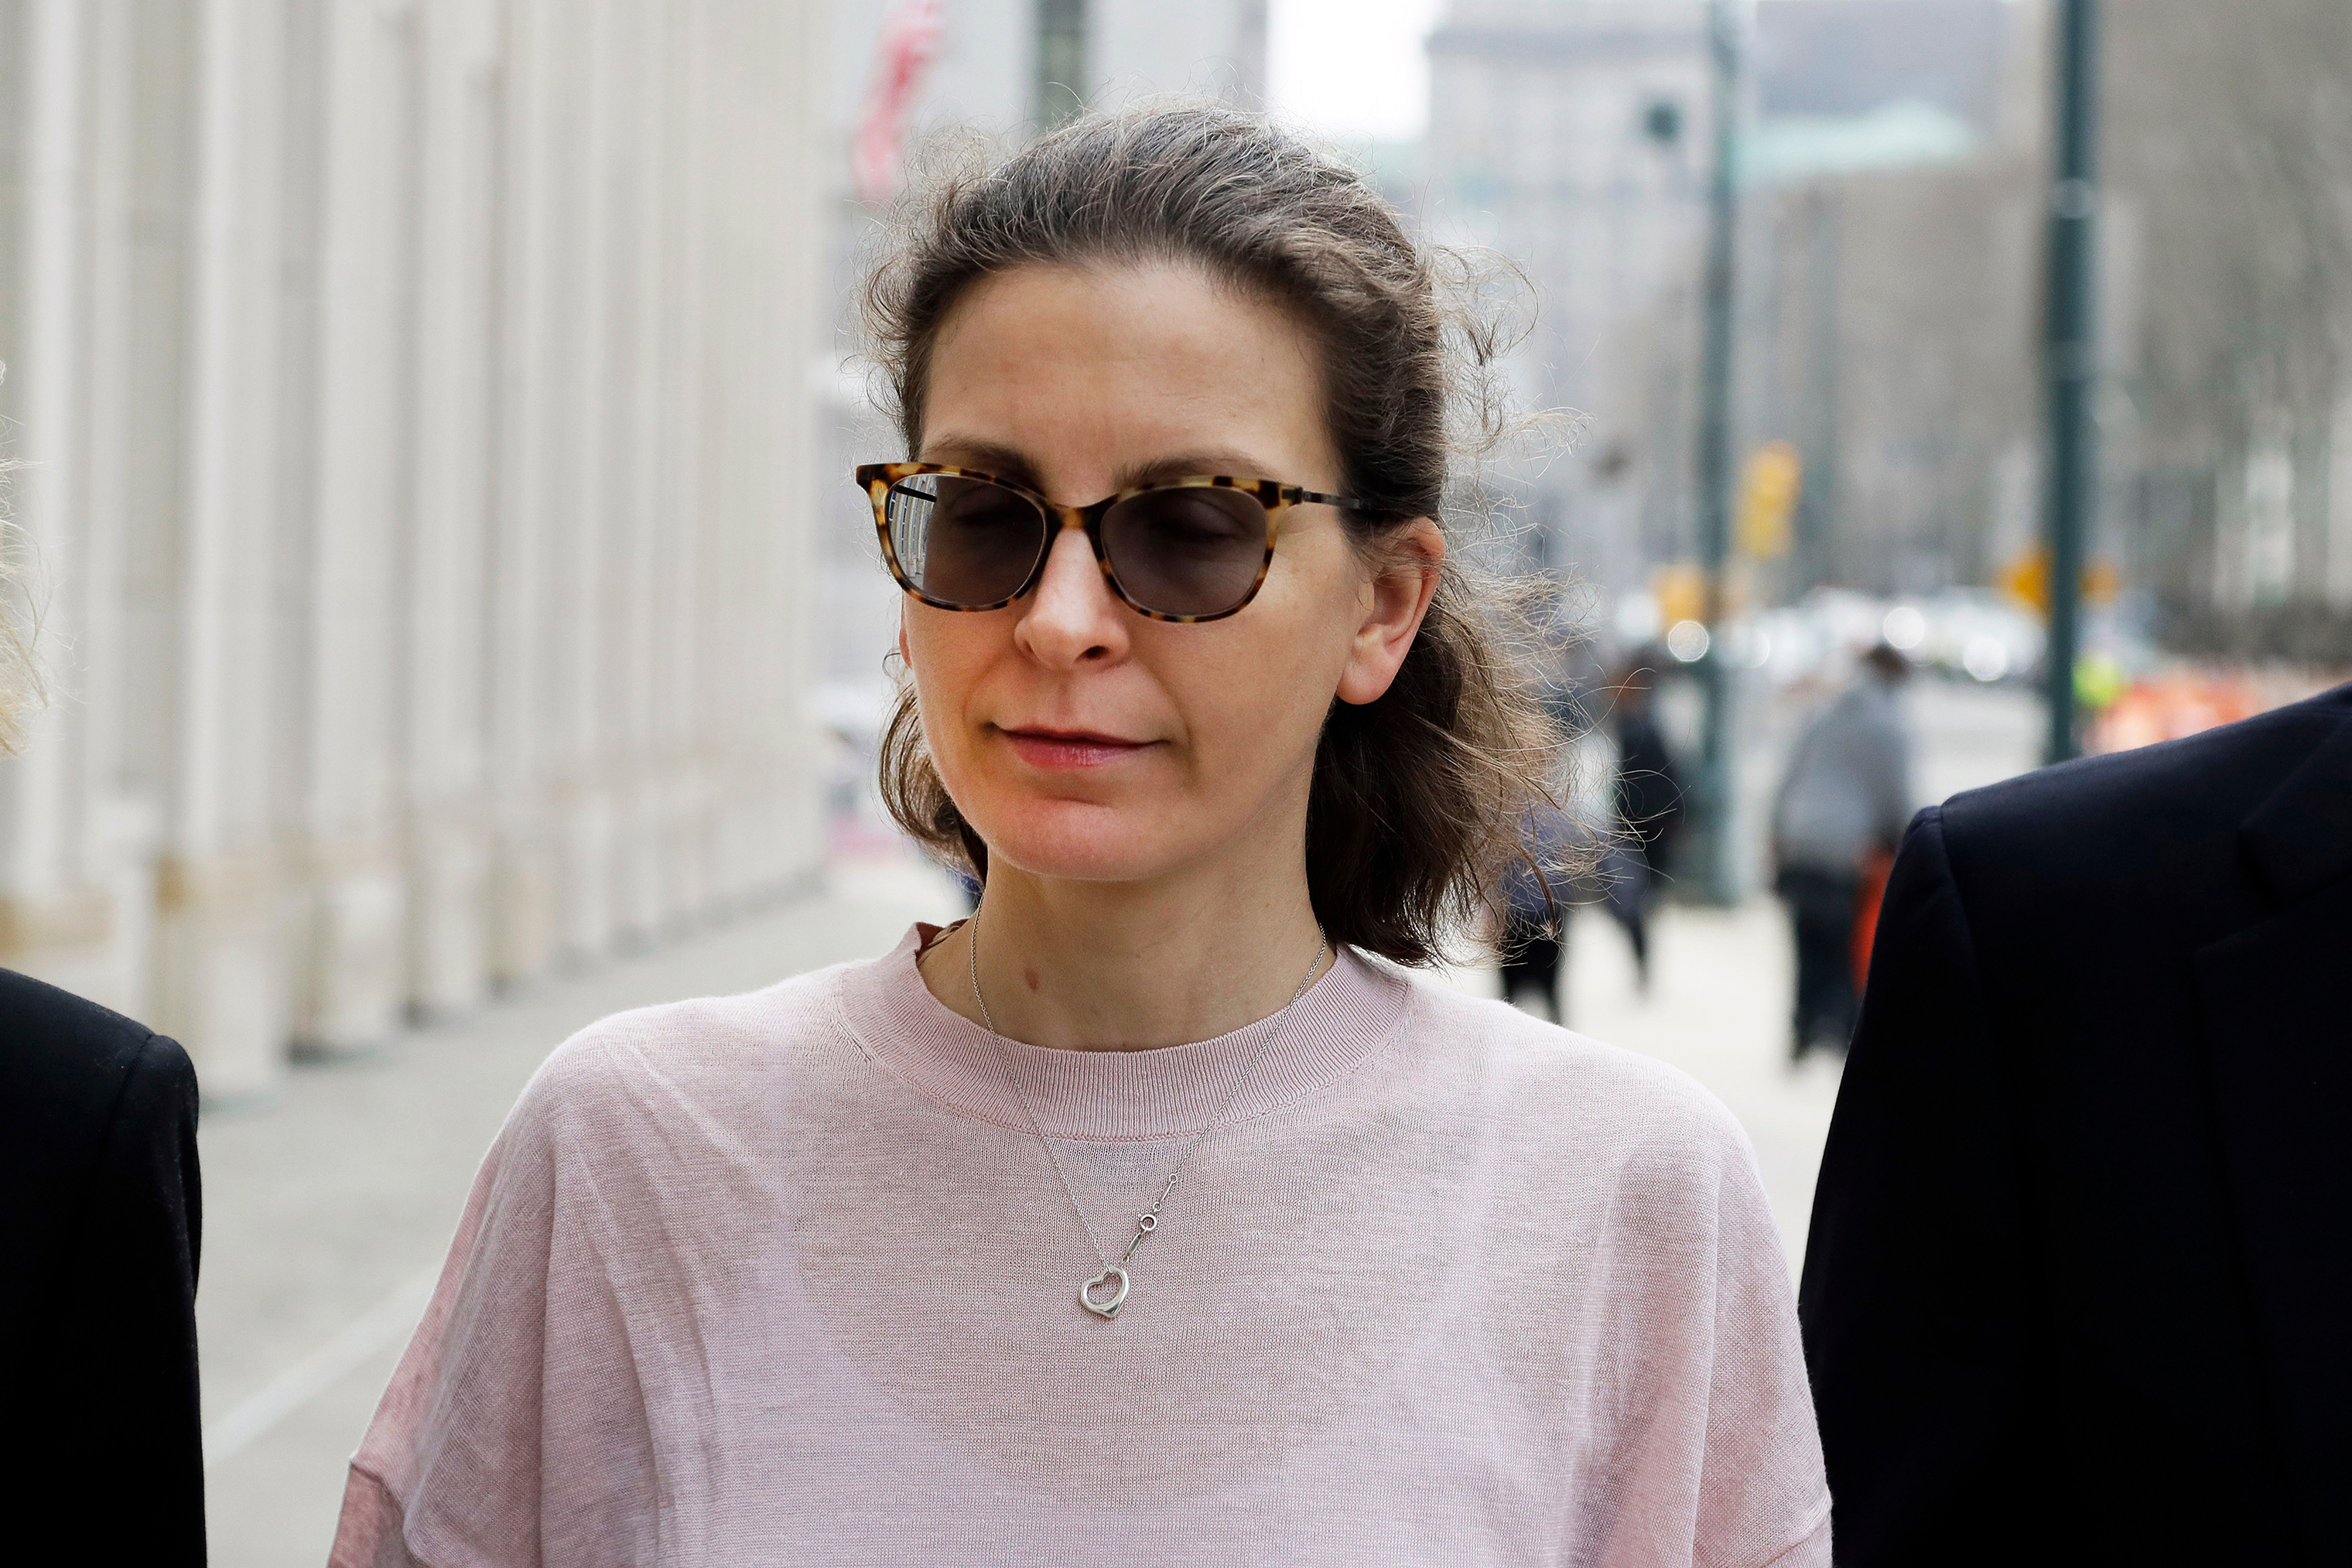 Clare Bronfman, a member of NXIVM, arrives at Brooklyn Federal Court, in New York on April 8, 2019.